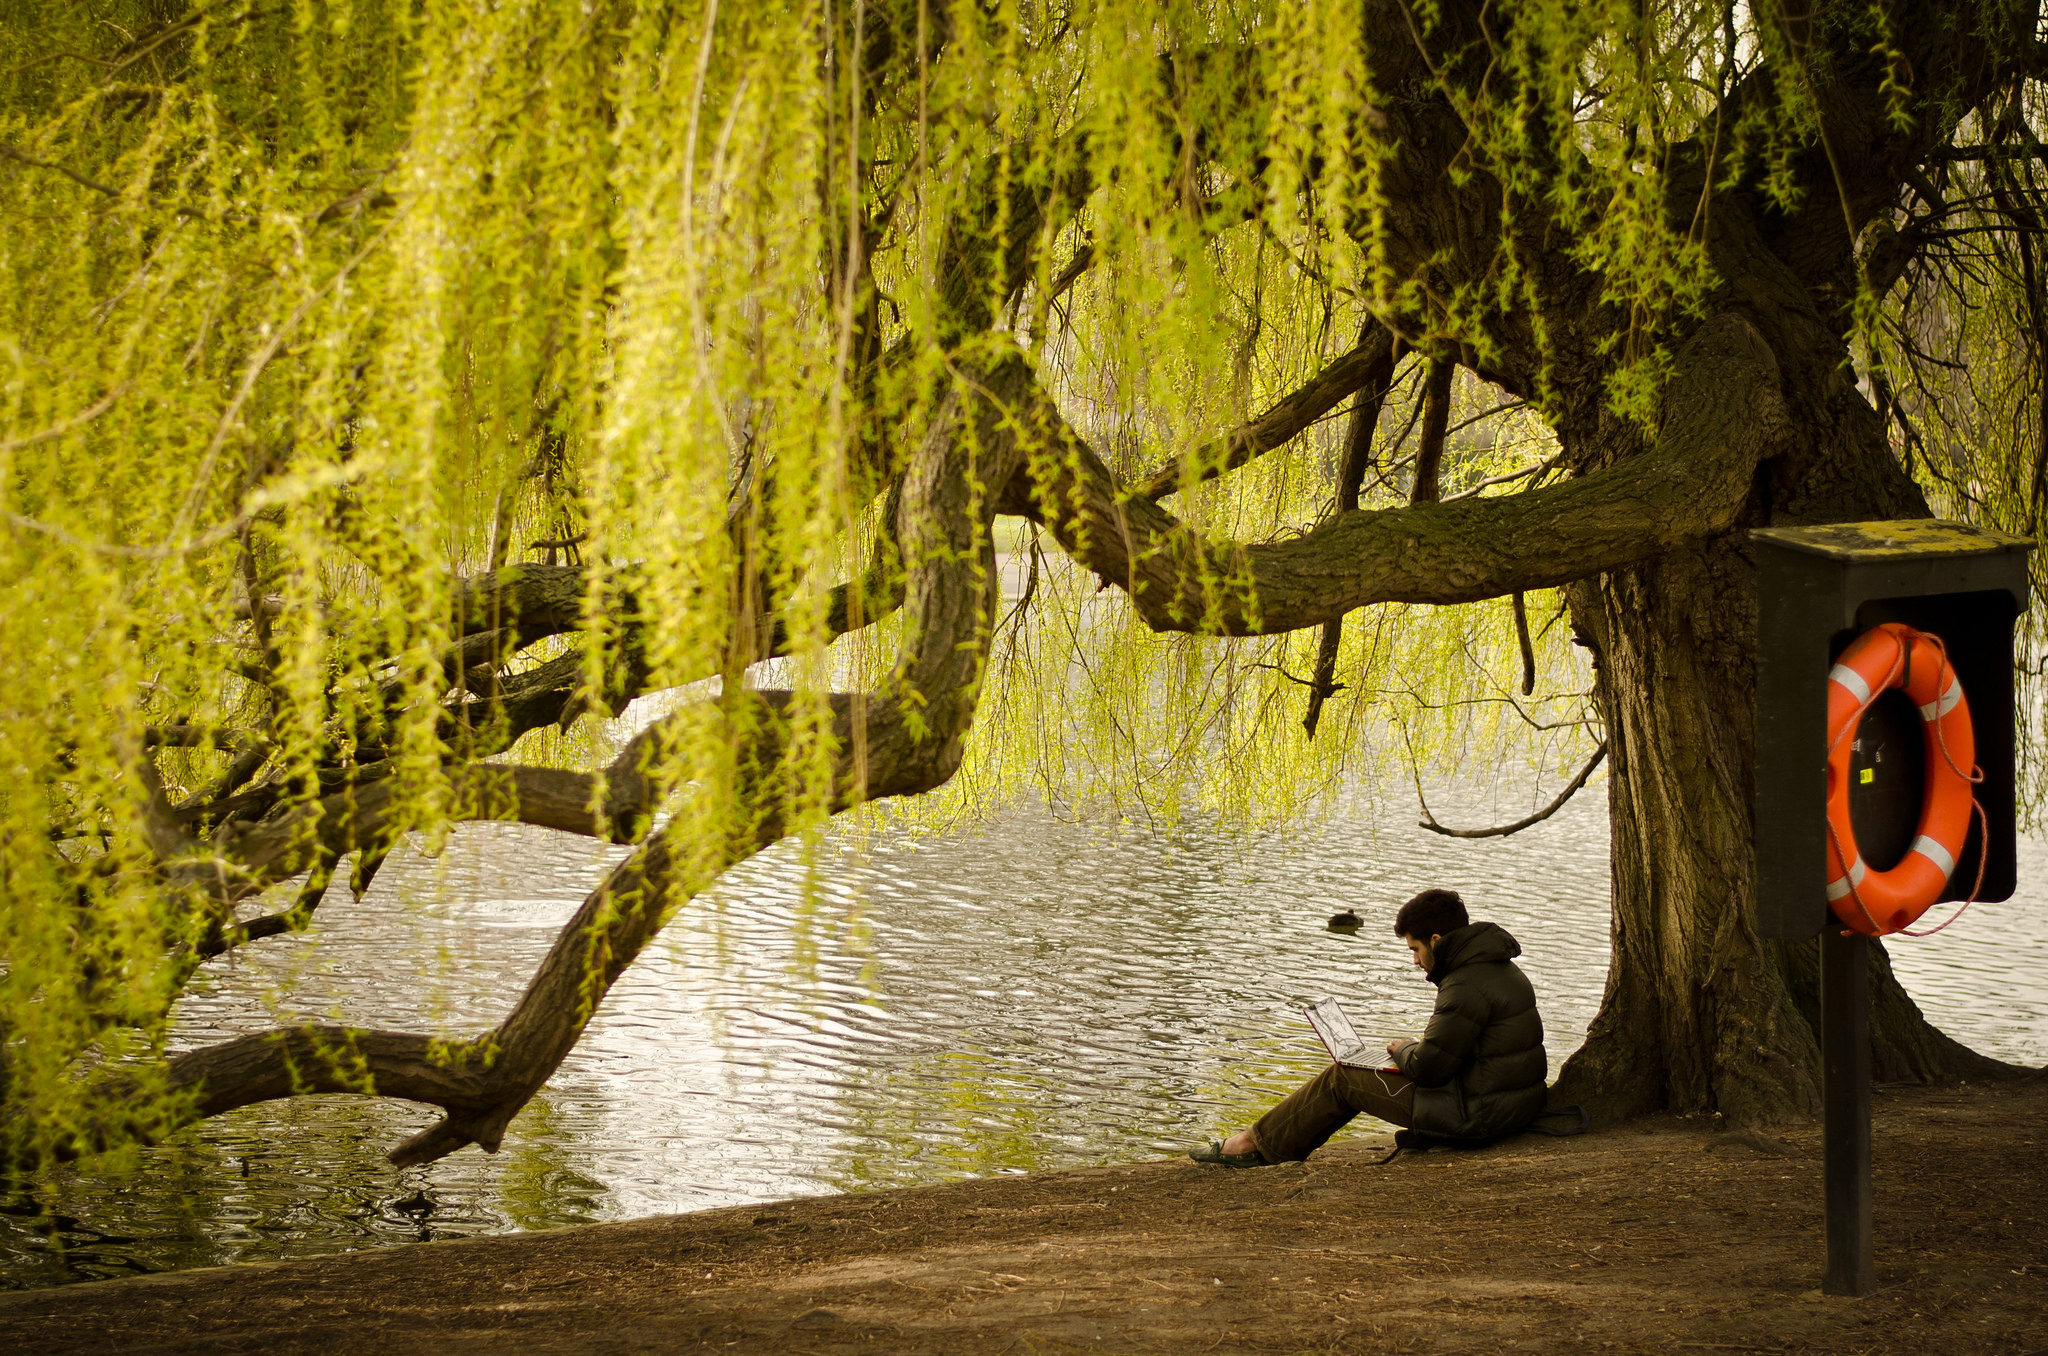 """Working under a willow"" by Garry Knight 2012 CC BY 2.0"